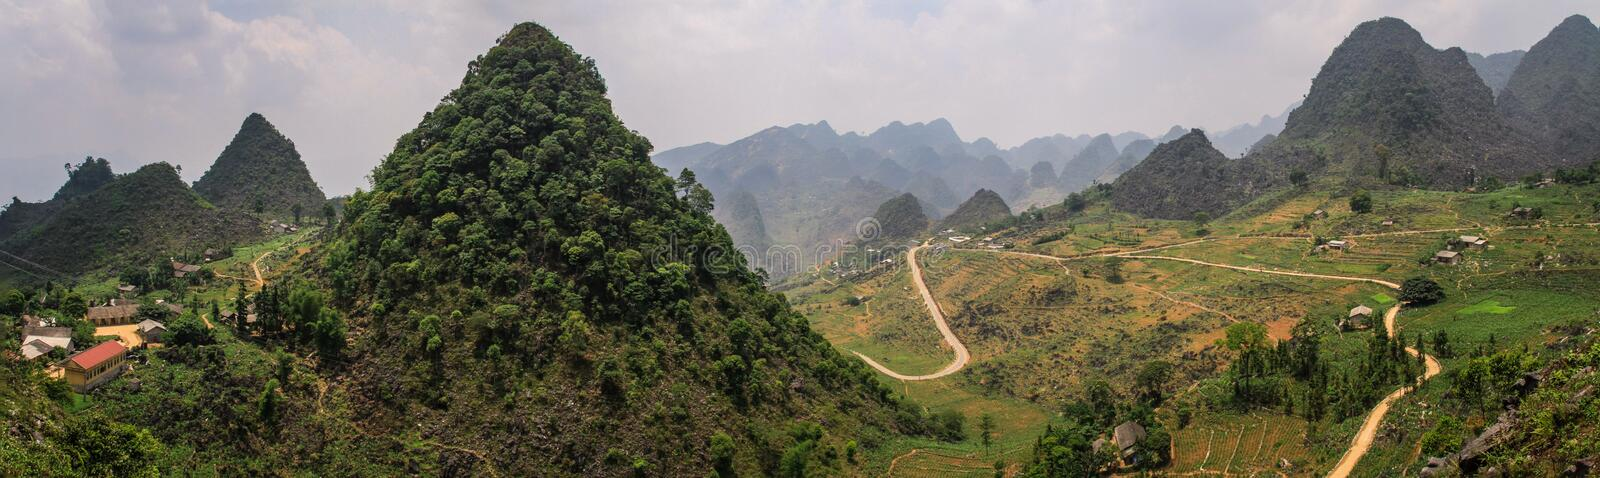 Panorama of the majestic karst mountains around Meo Vac, Ha Giang Province, Vietnam. Meo Vac is a small but charming district capital hemmed in by steep karst royalty free stock image